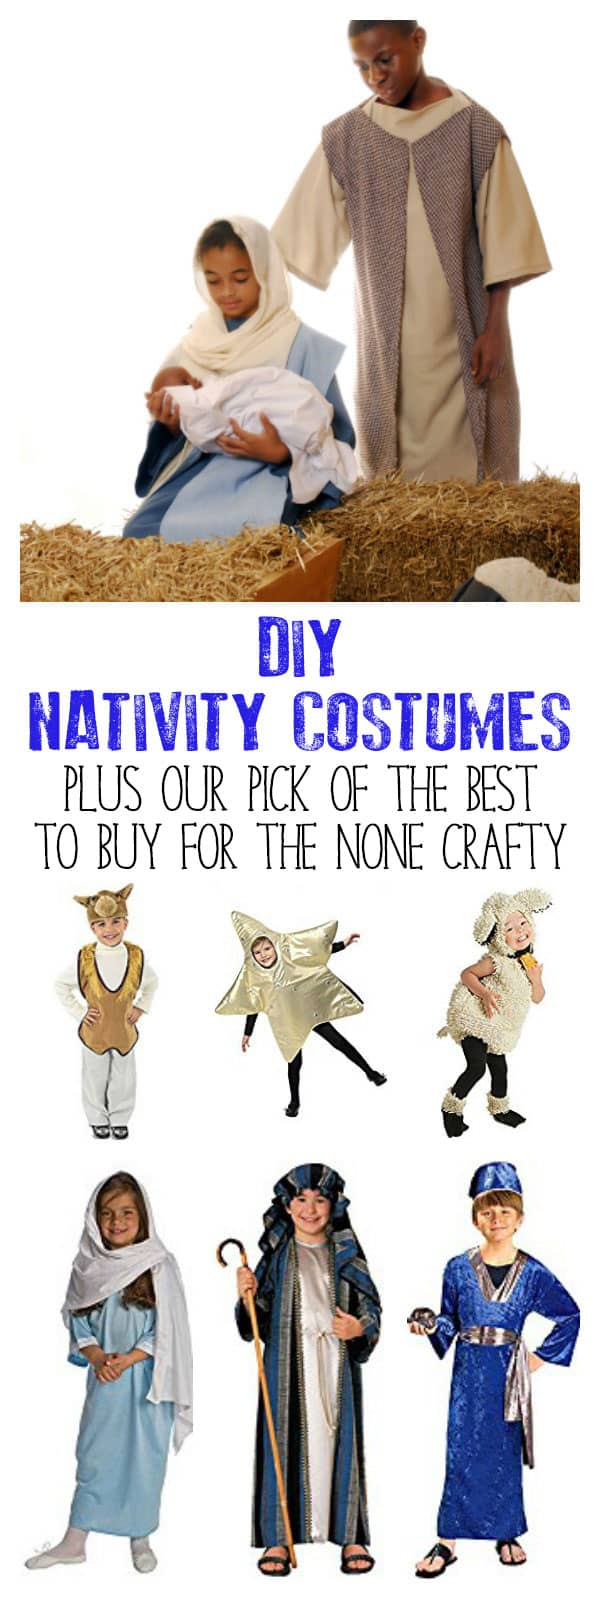 The best nativity costumes to make or buy for this years nativity show best nativity costumes to diy or buy for children with ideas for all the characters solutioingenieria Image collections